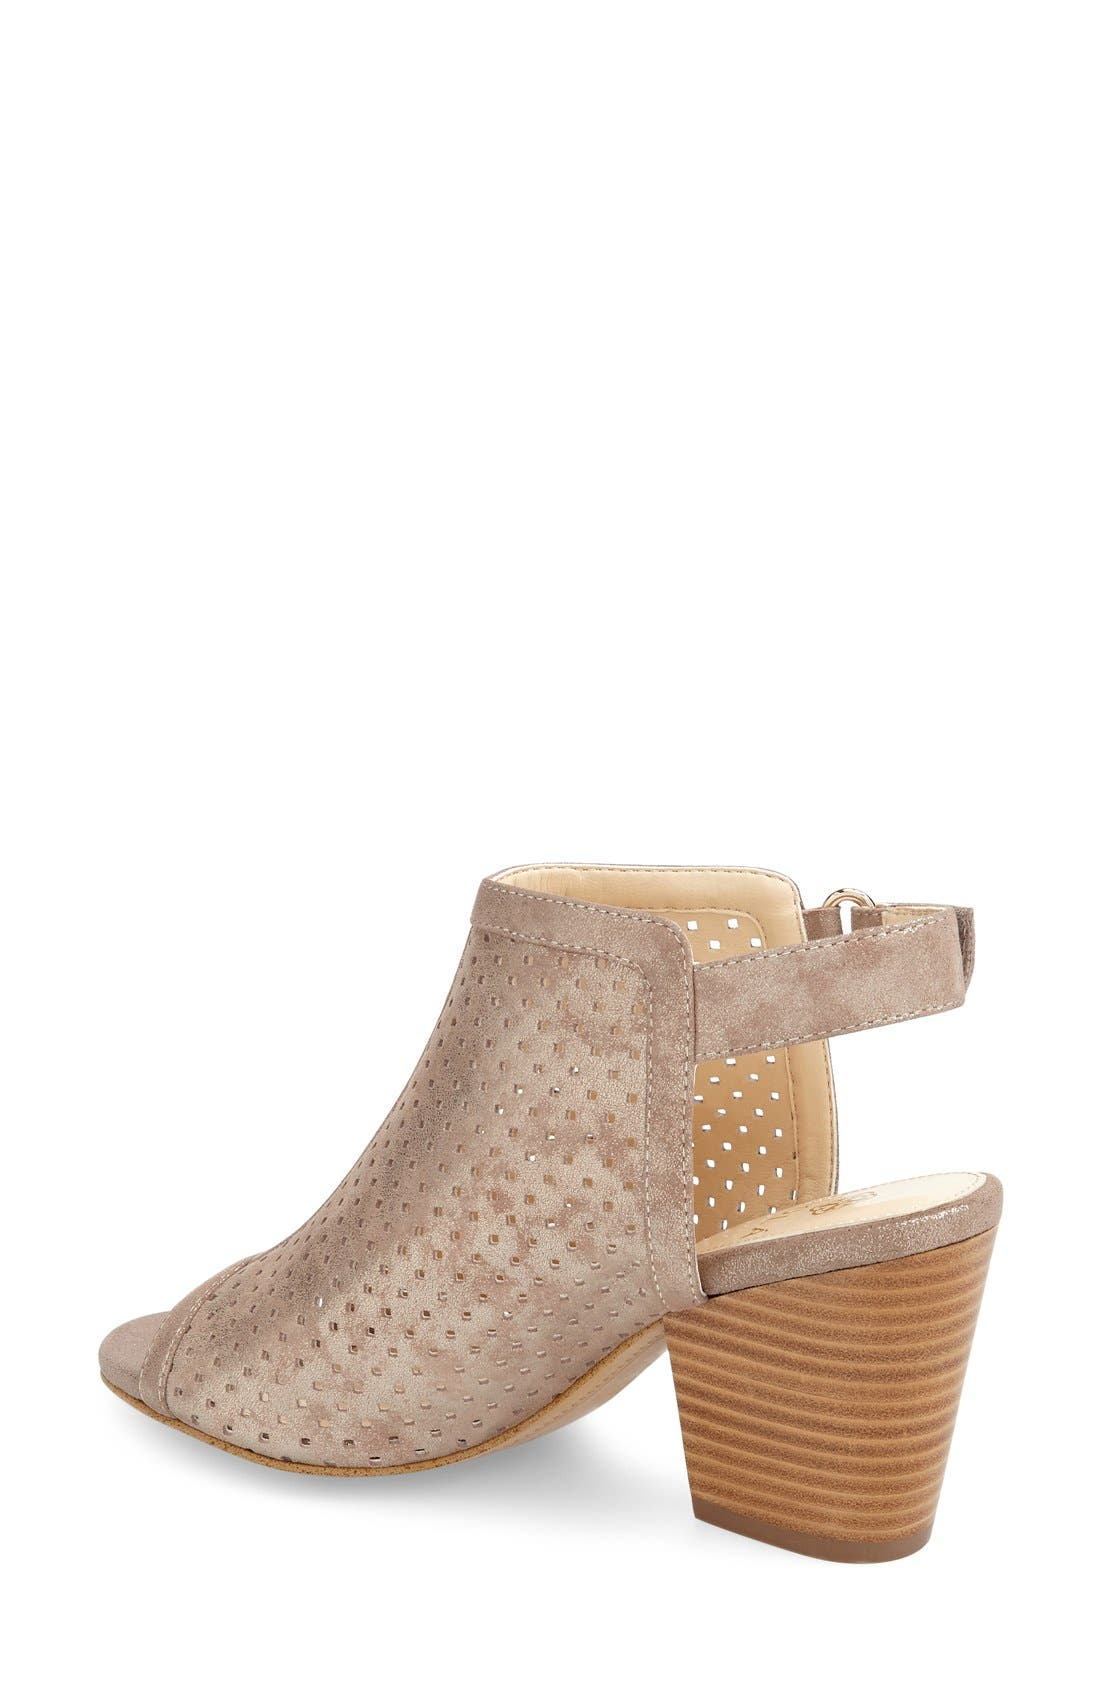 ,                             'Lora' Perforated Open-Toe Bootie Sandal,                             Alternate thumbnail 2, color,                             040